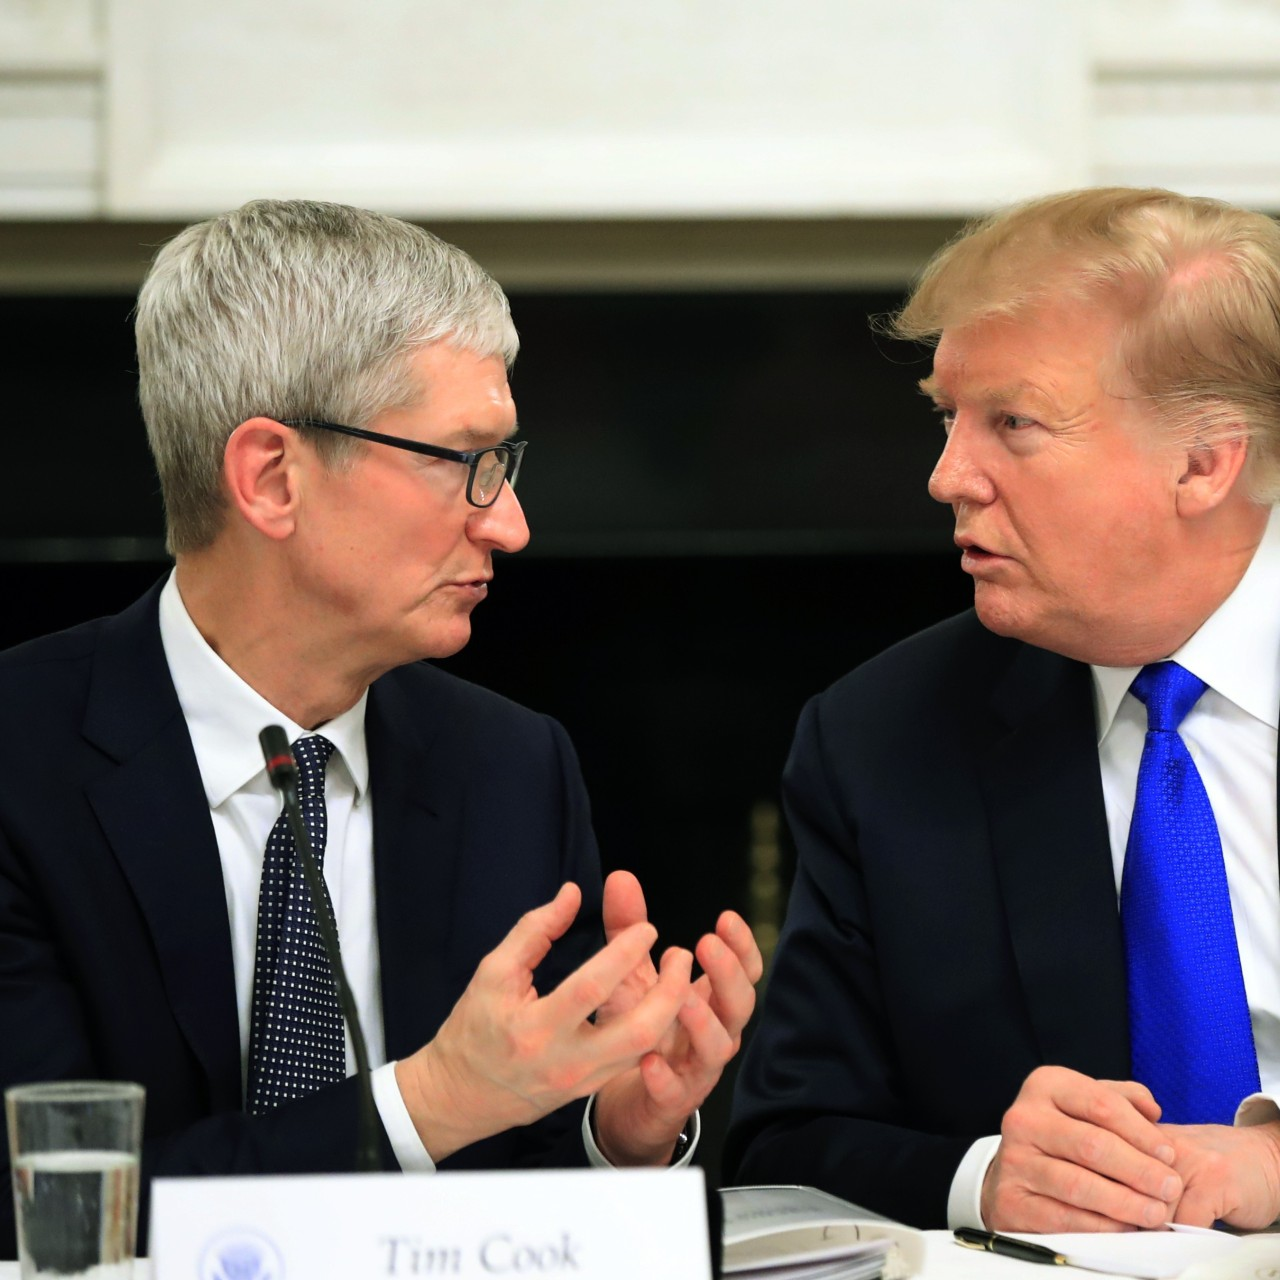 Apple's CEO embraces Donald Trump's name gaffe, is now 'Tim